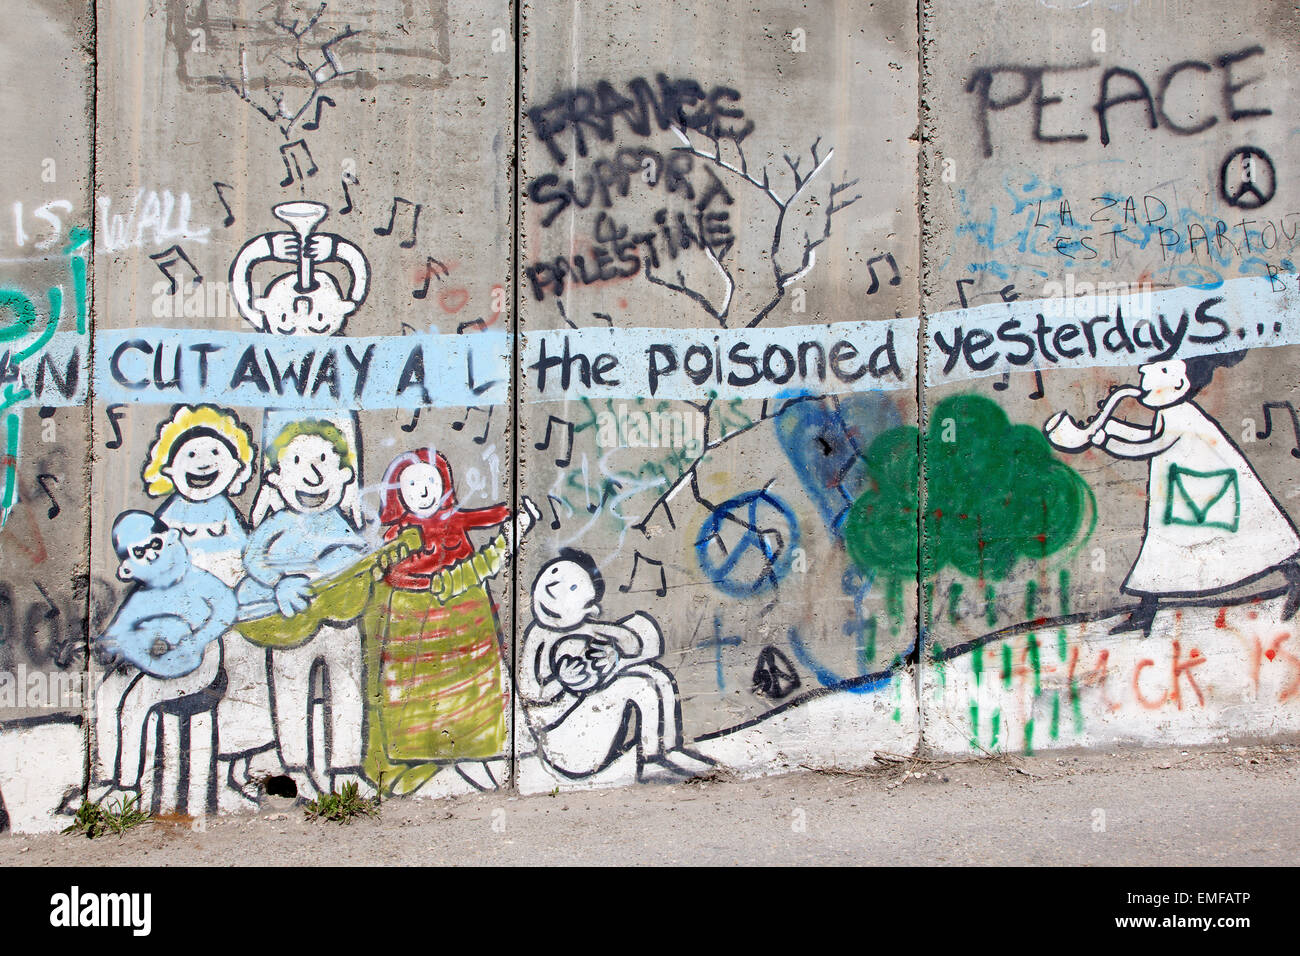 BETHLEHEM, ISRAEL - MARCH 6, 2015: The Detail of graffitti on the Separation barrier. - Stock Image